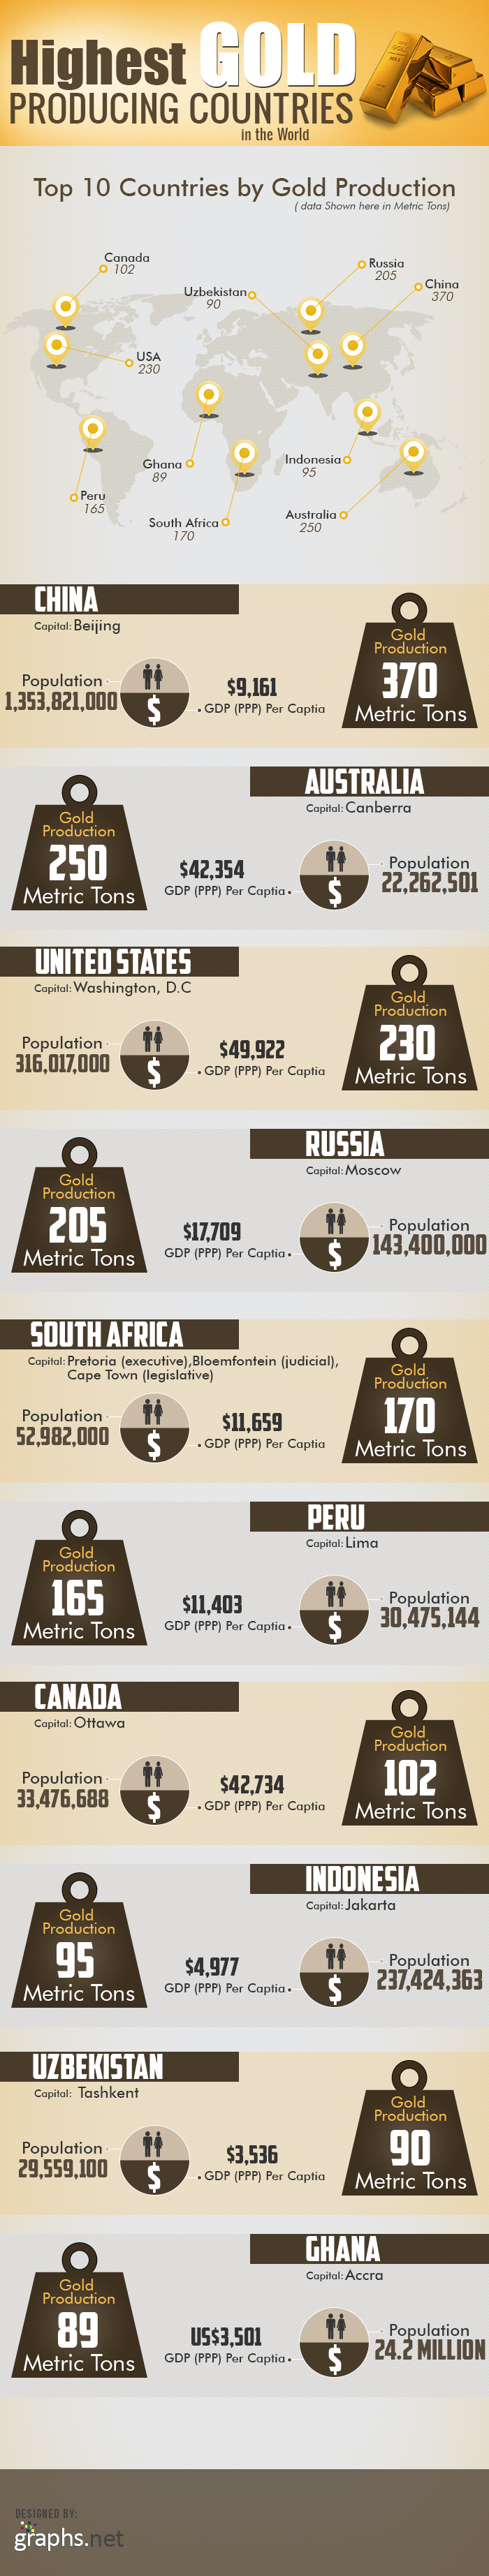 Highest Gold Producing Countries in the World